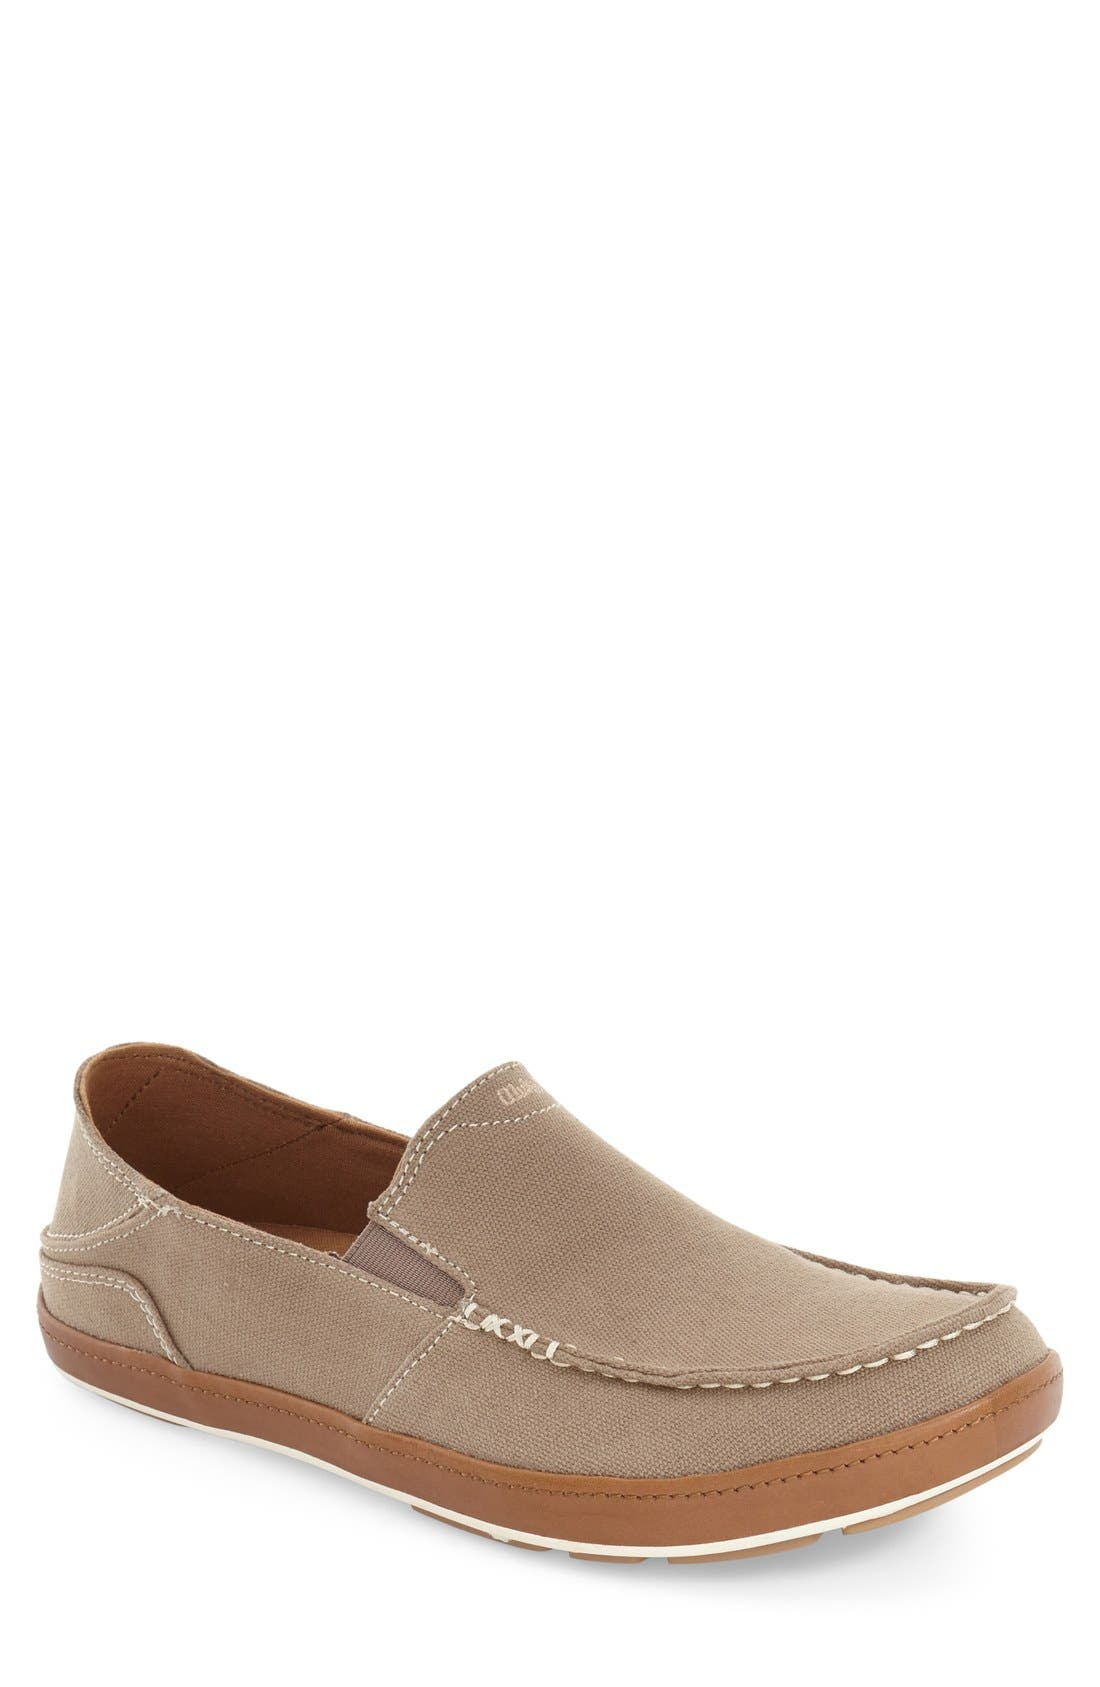 'Puhalu' Slip-On,                         Main,                         color, CLAY/ TOFFEE